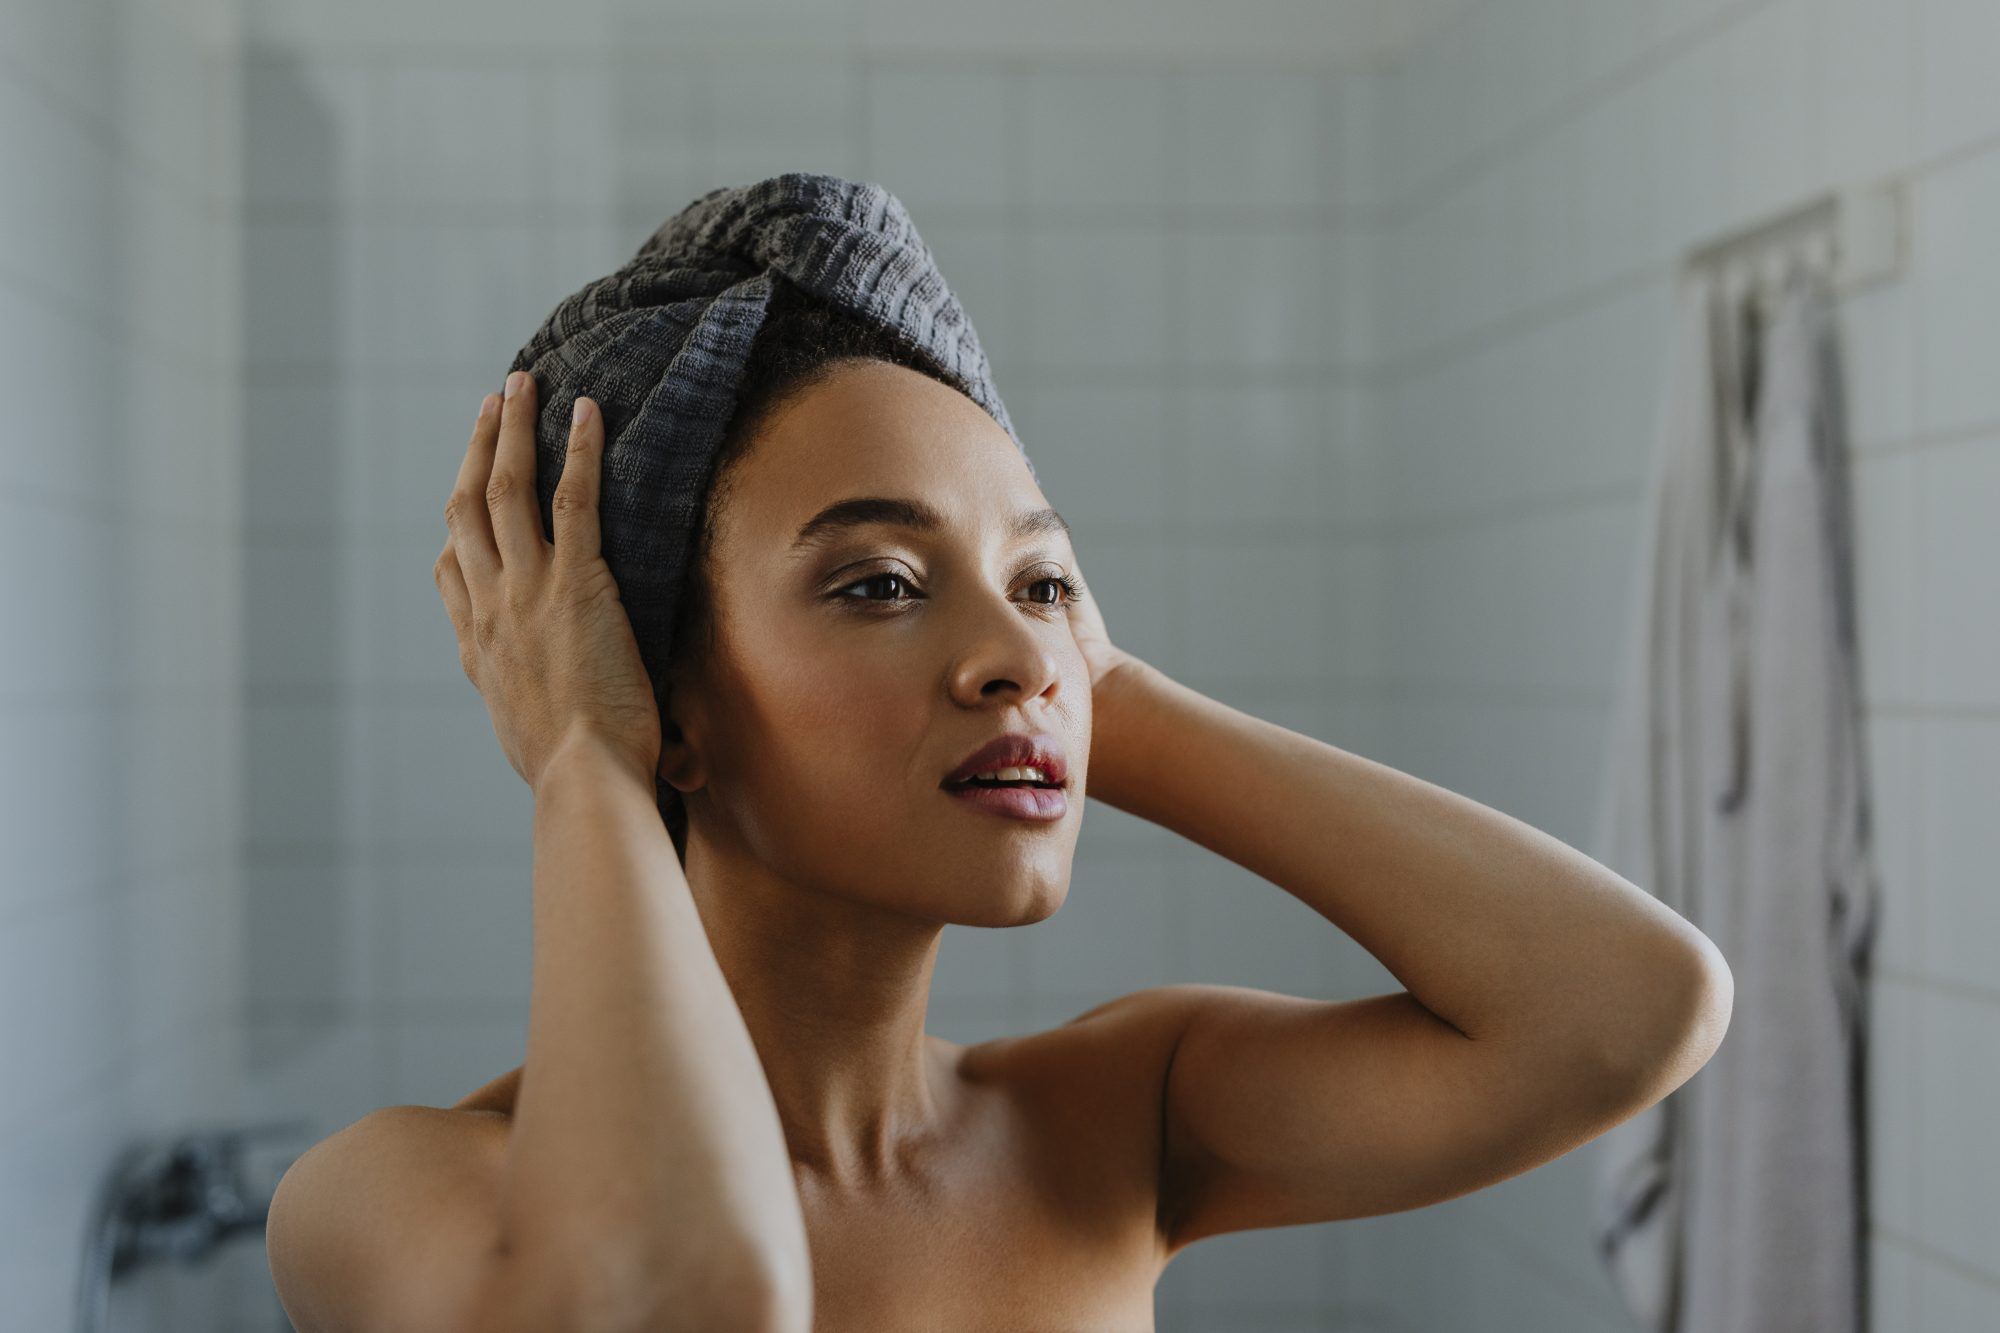 woman drying hair with towel after shower